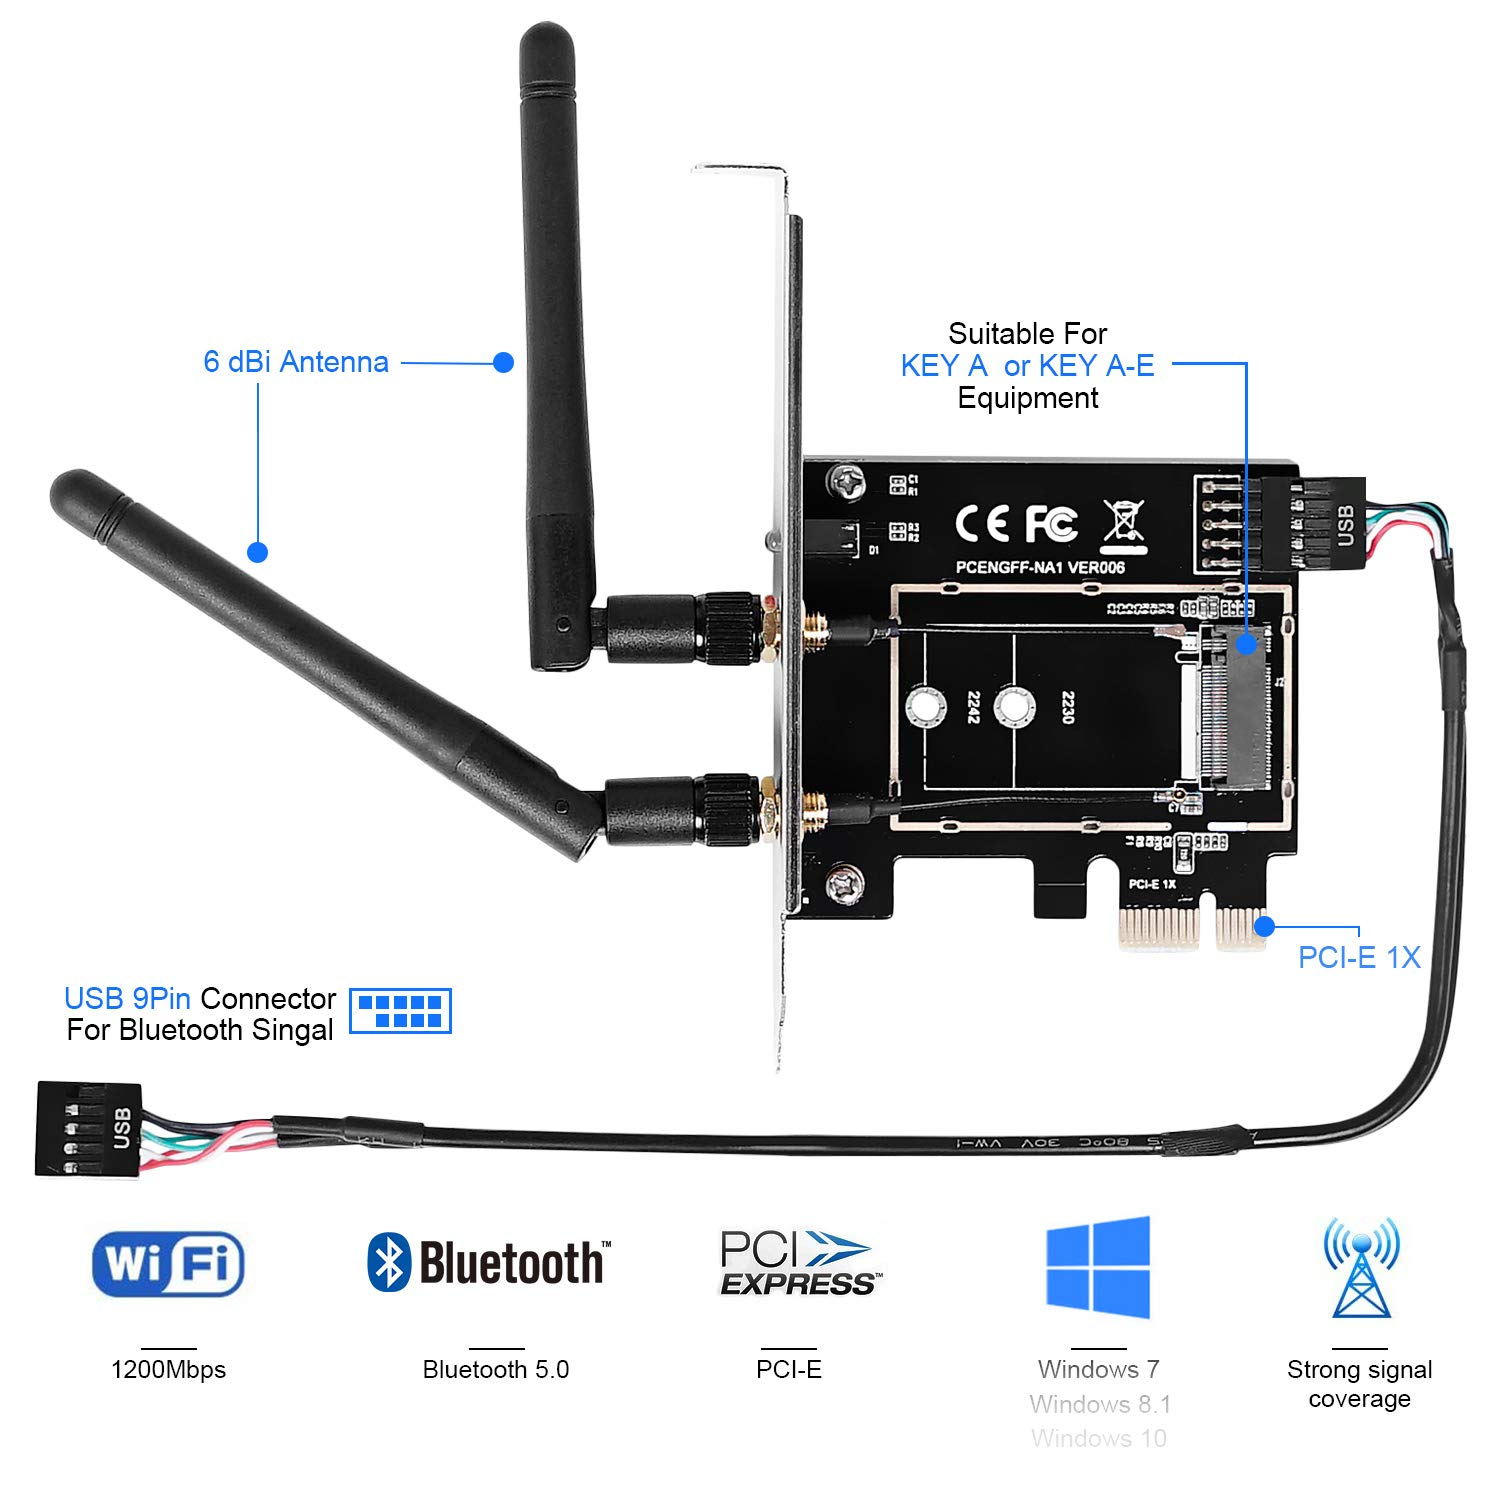 MZHOU Wireless Network Card Adapter M.2 NGFF to PCI-E 1X WiFi Network Card Converter,PCI-E M.2//NGFF Card Passive Adapter with Dual-Band 2.4//5G Antenna,for WiFi and Bluetooth Card. Not Including WiFi